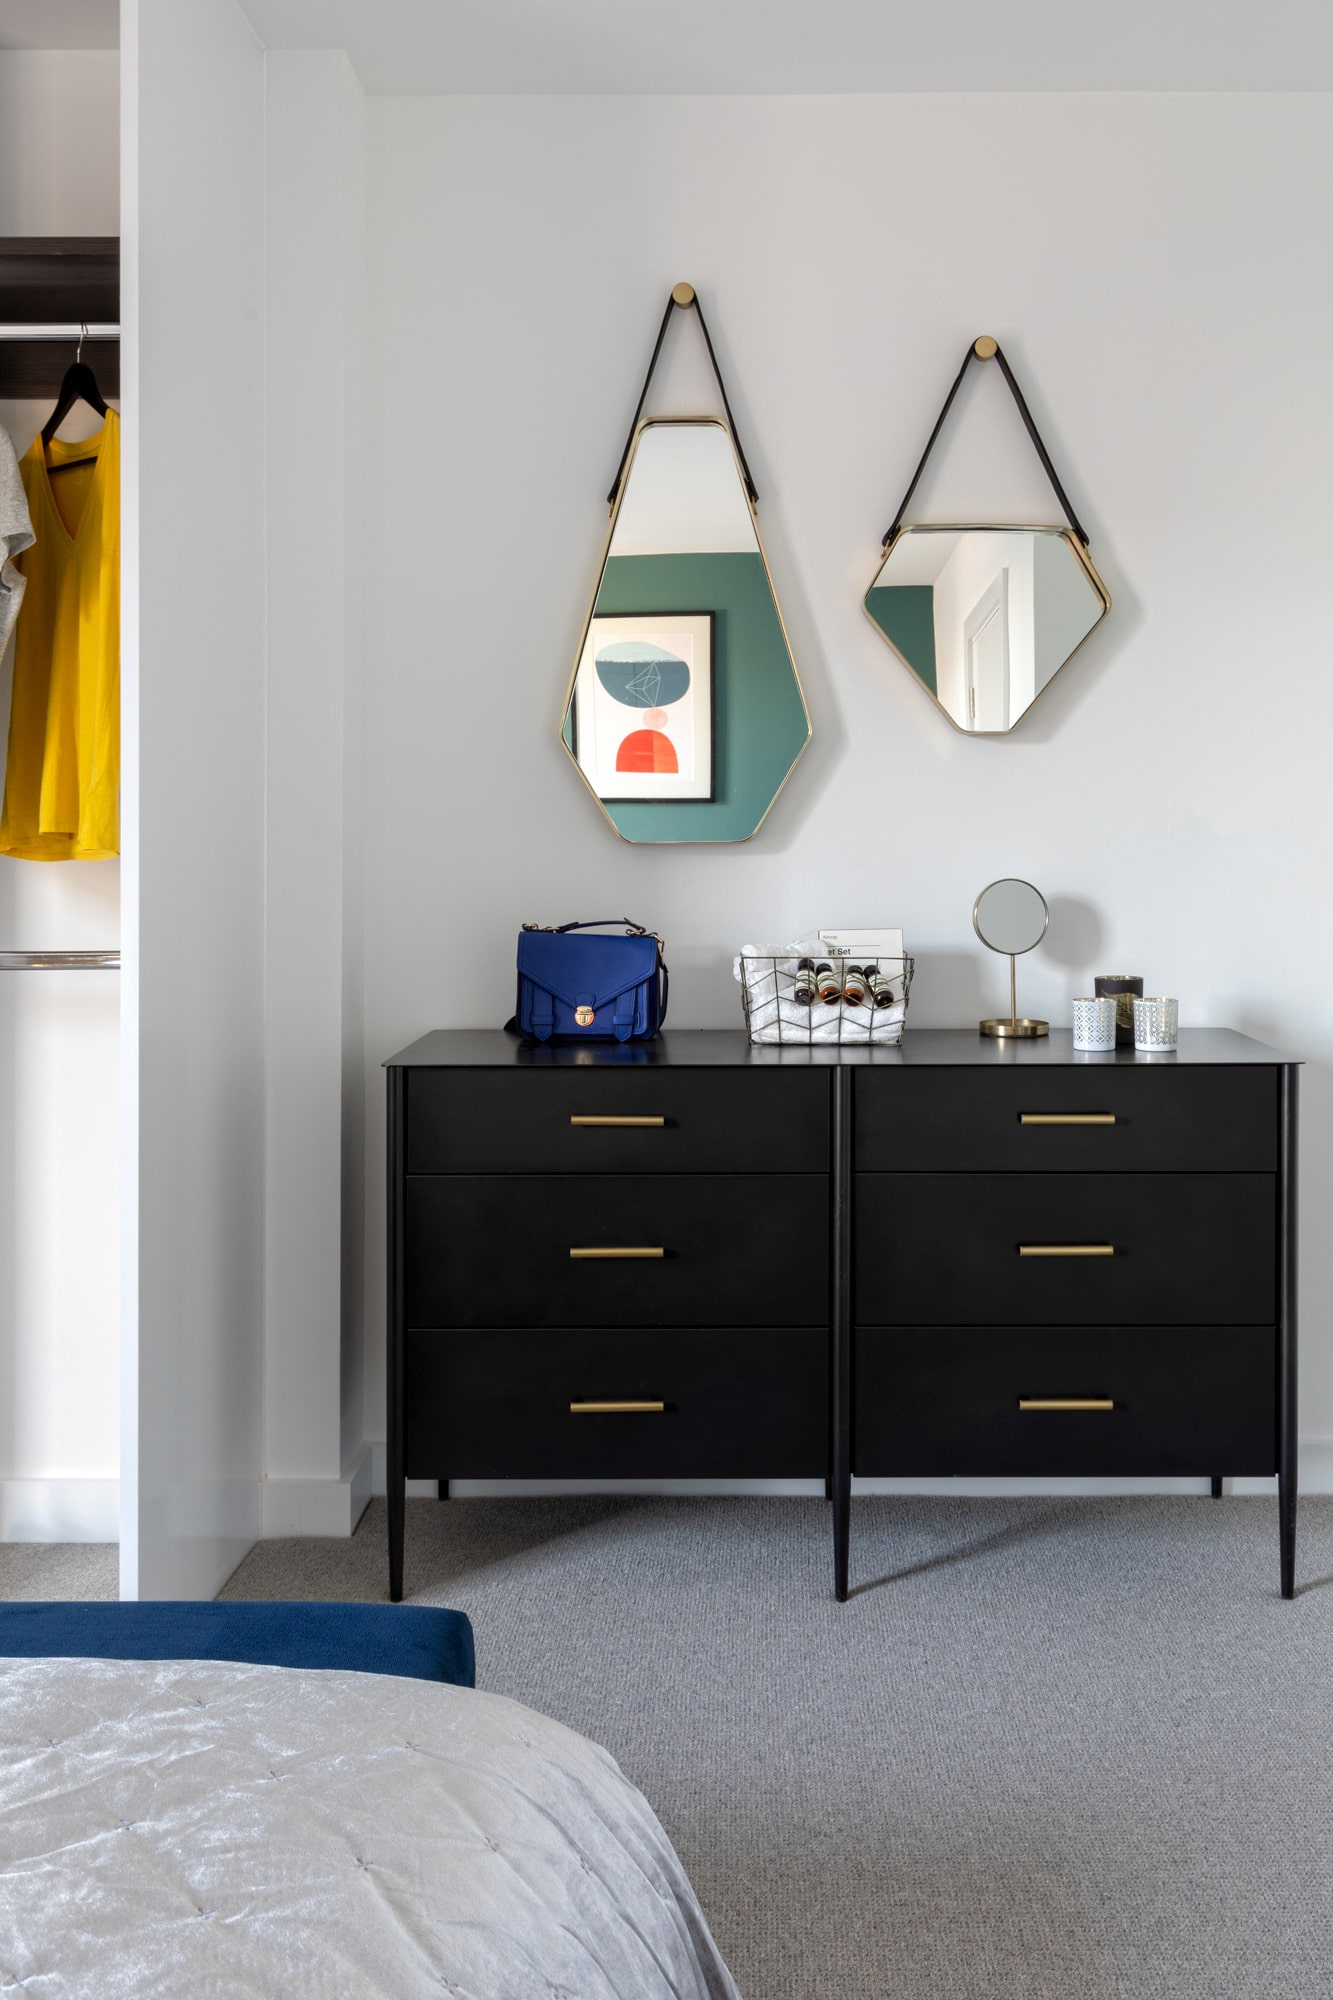 interior design photo: chest of drawers with triangle mirrors above